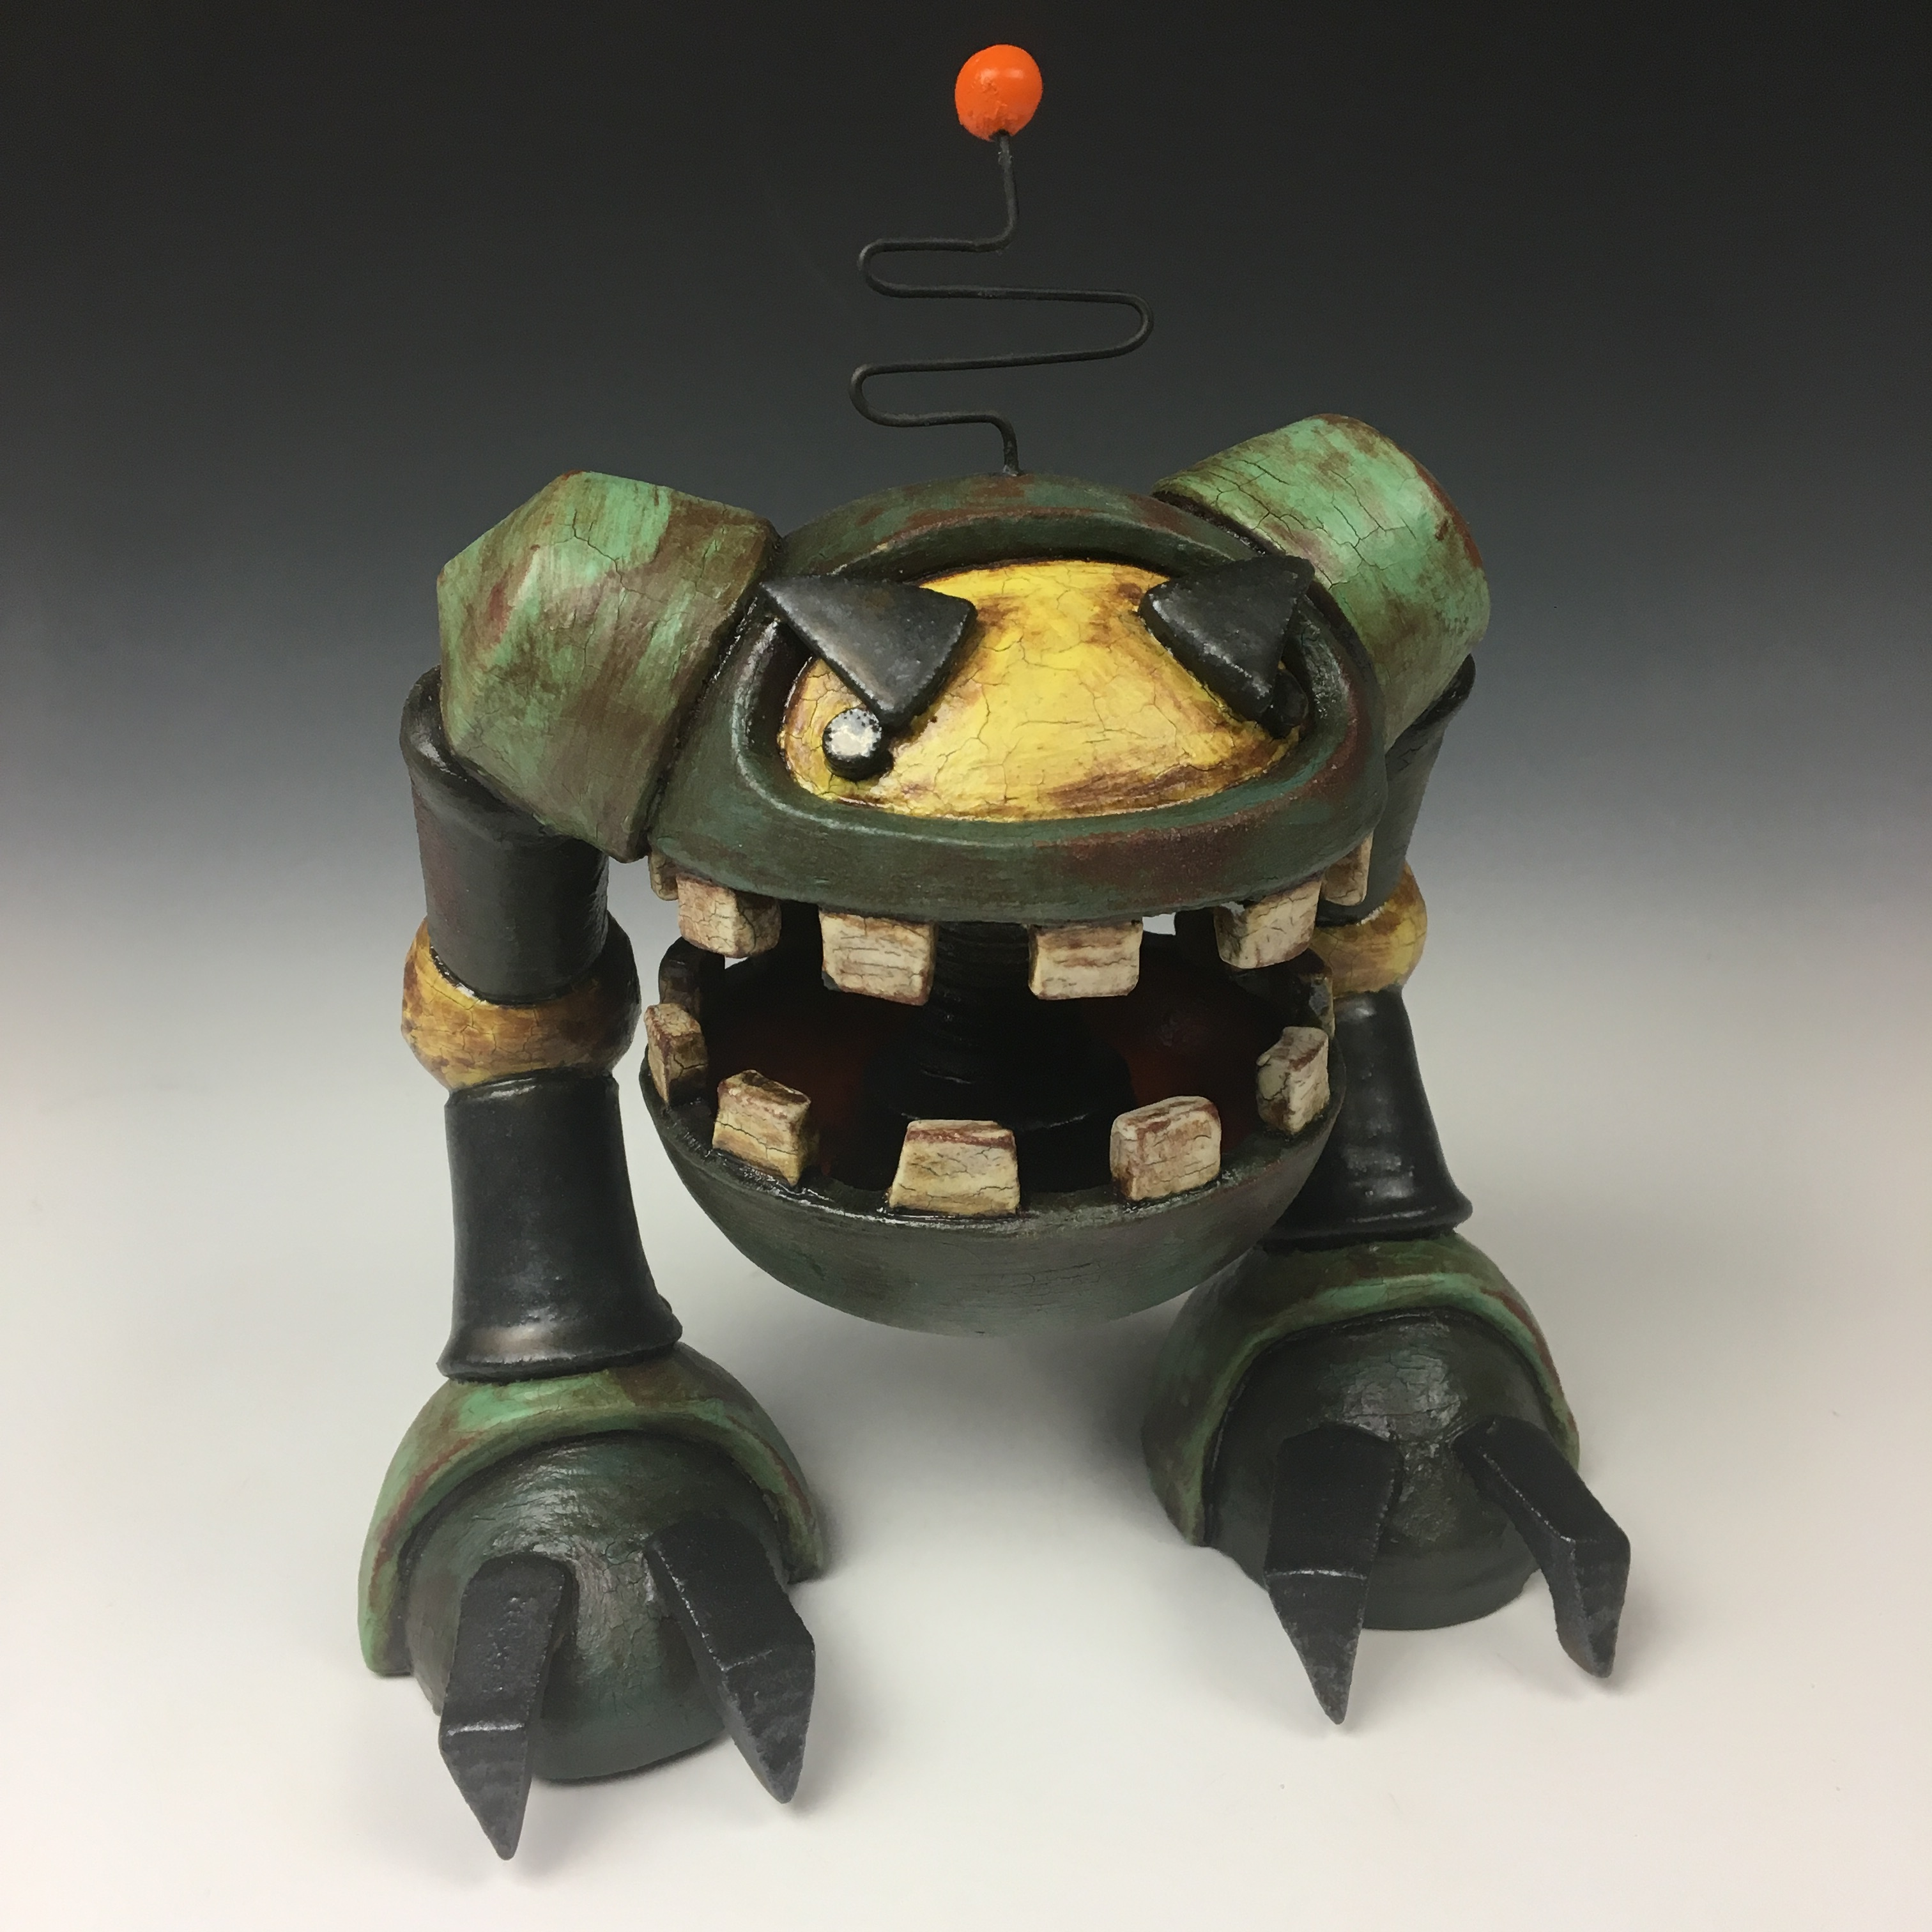 Rogue Robot Chomper, Beta Model